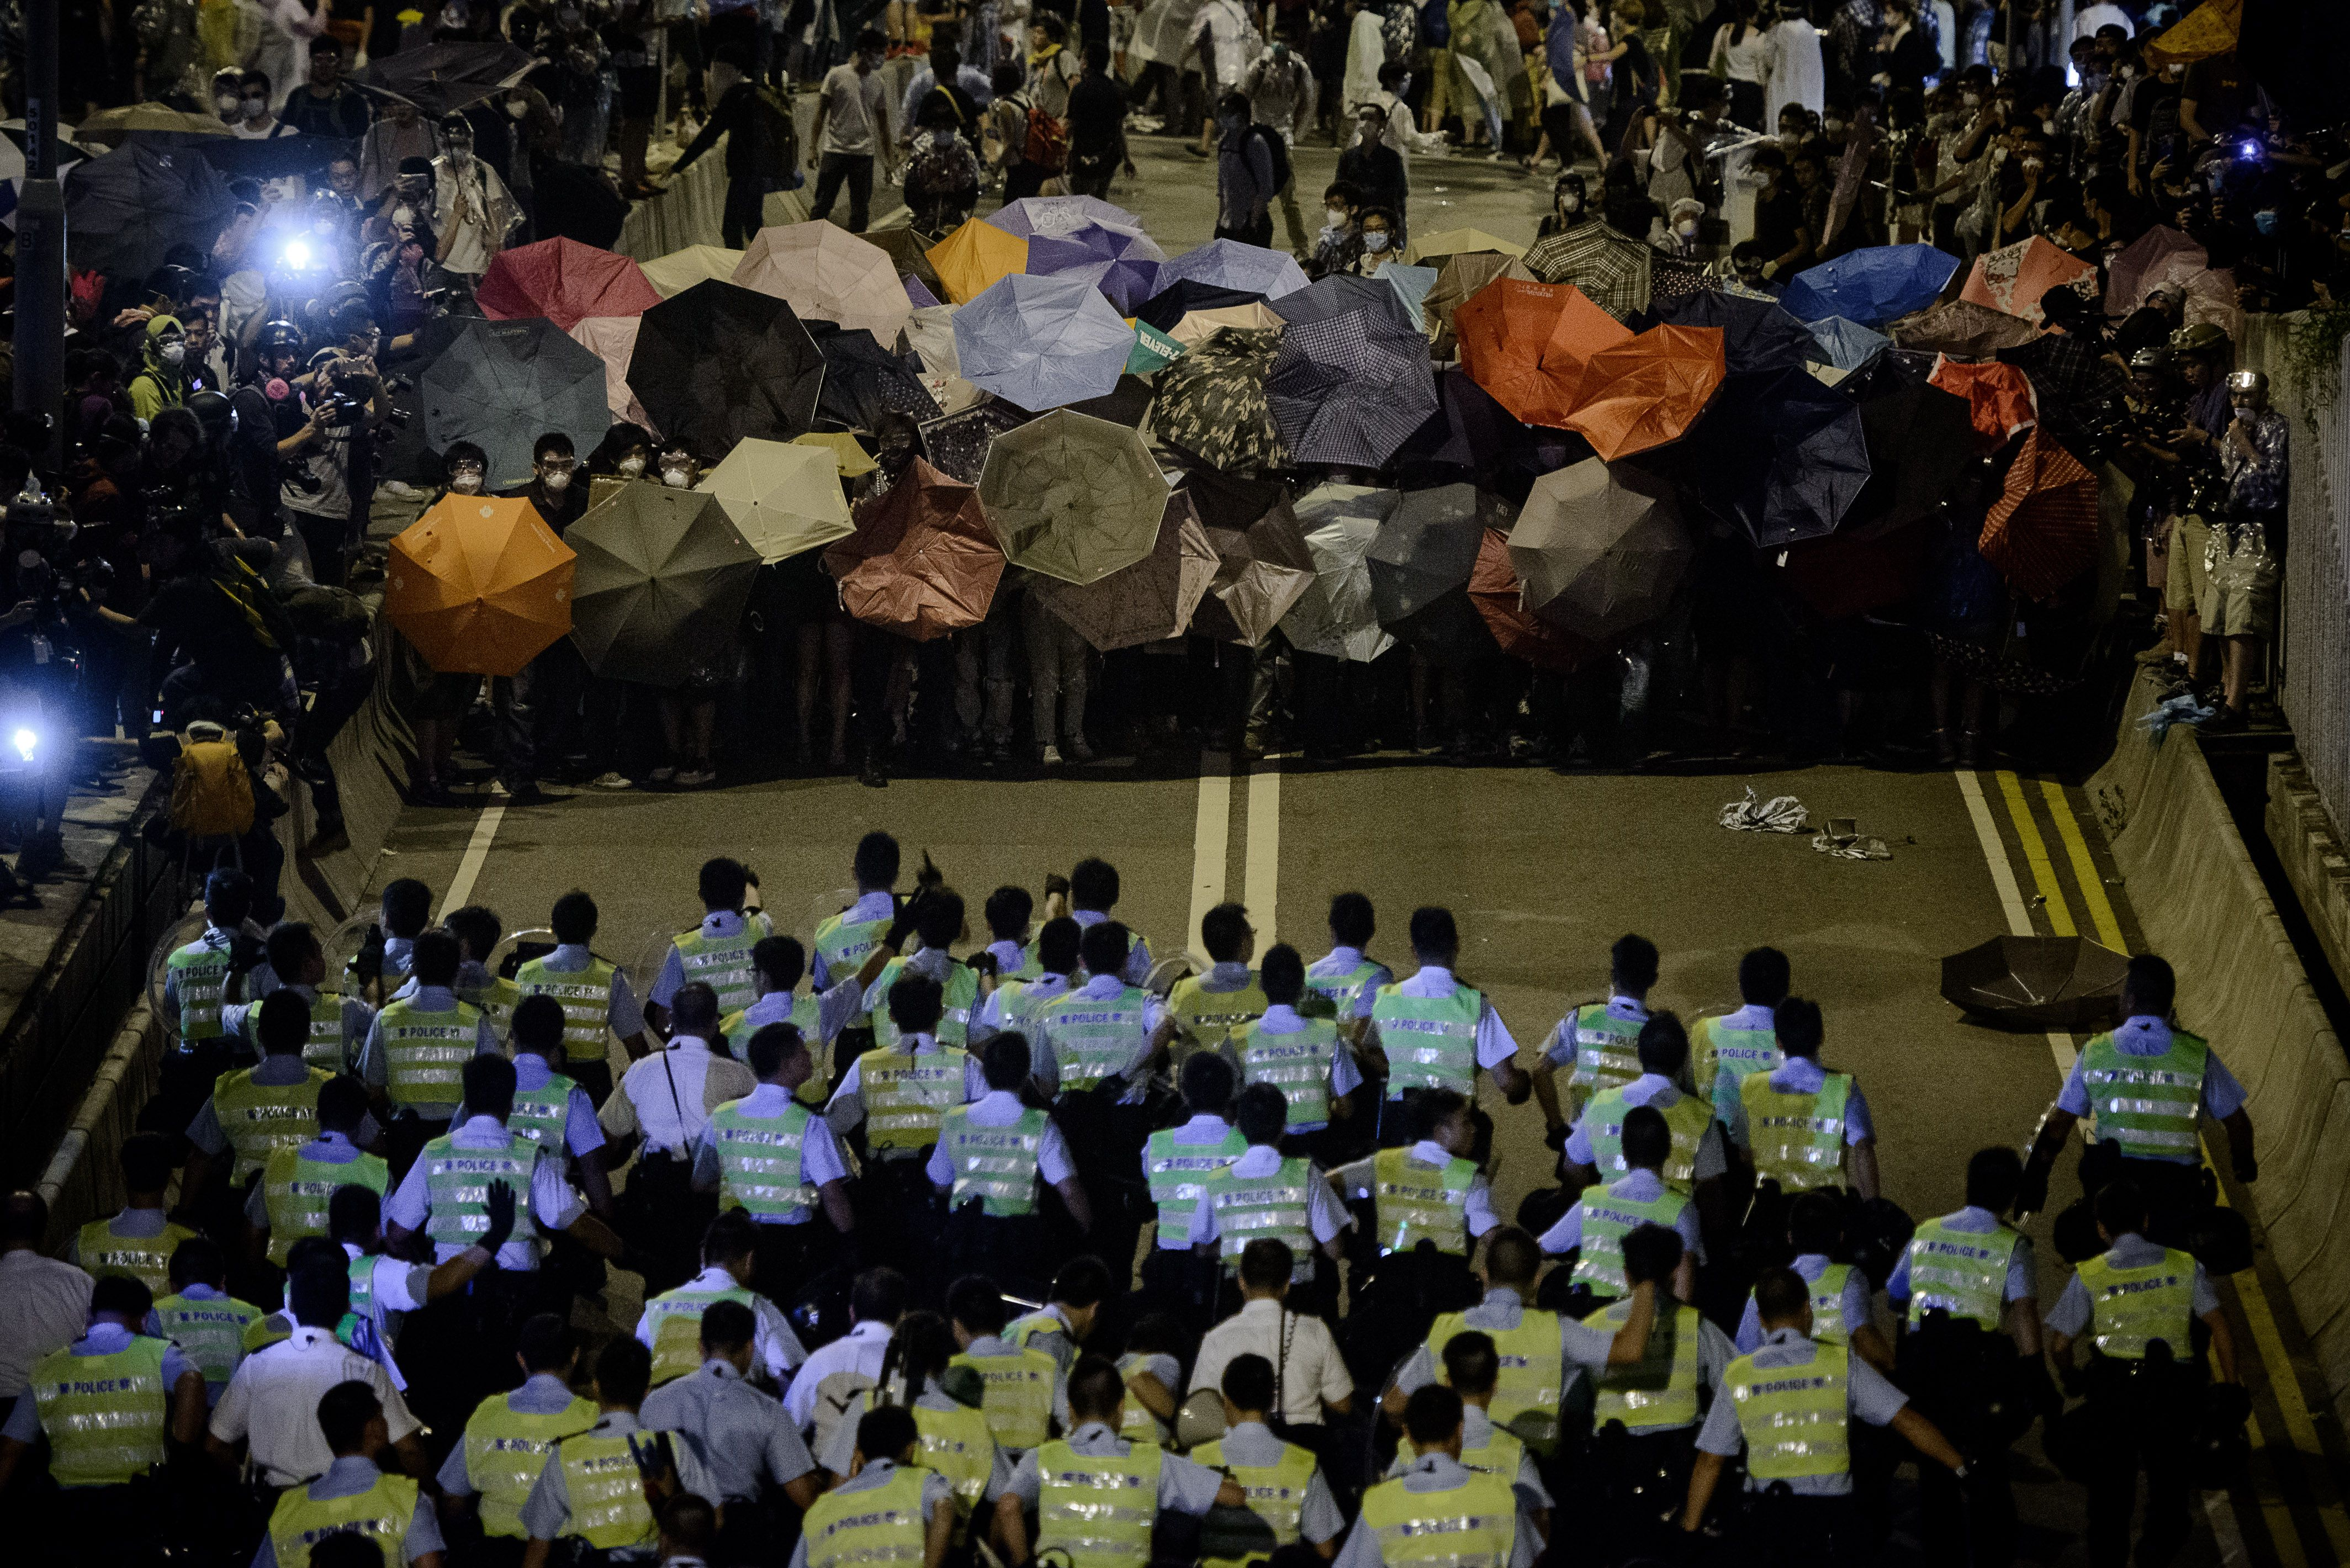 Police forces march toward pro-democracy protesters during a standoff outside the central government offices in Hong Kong on Oct. 14, 2014